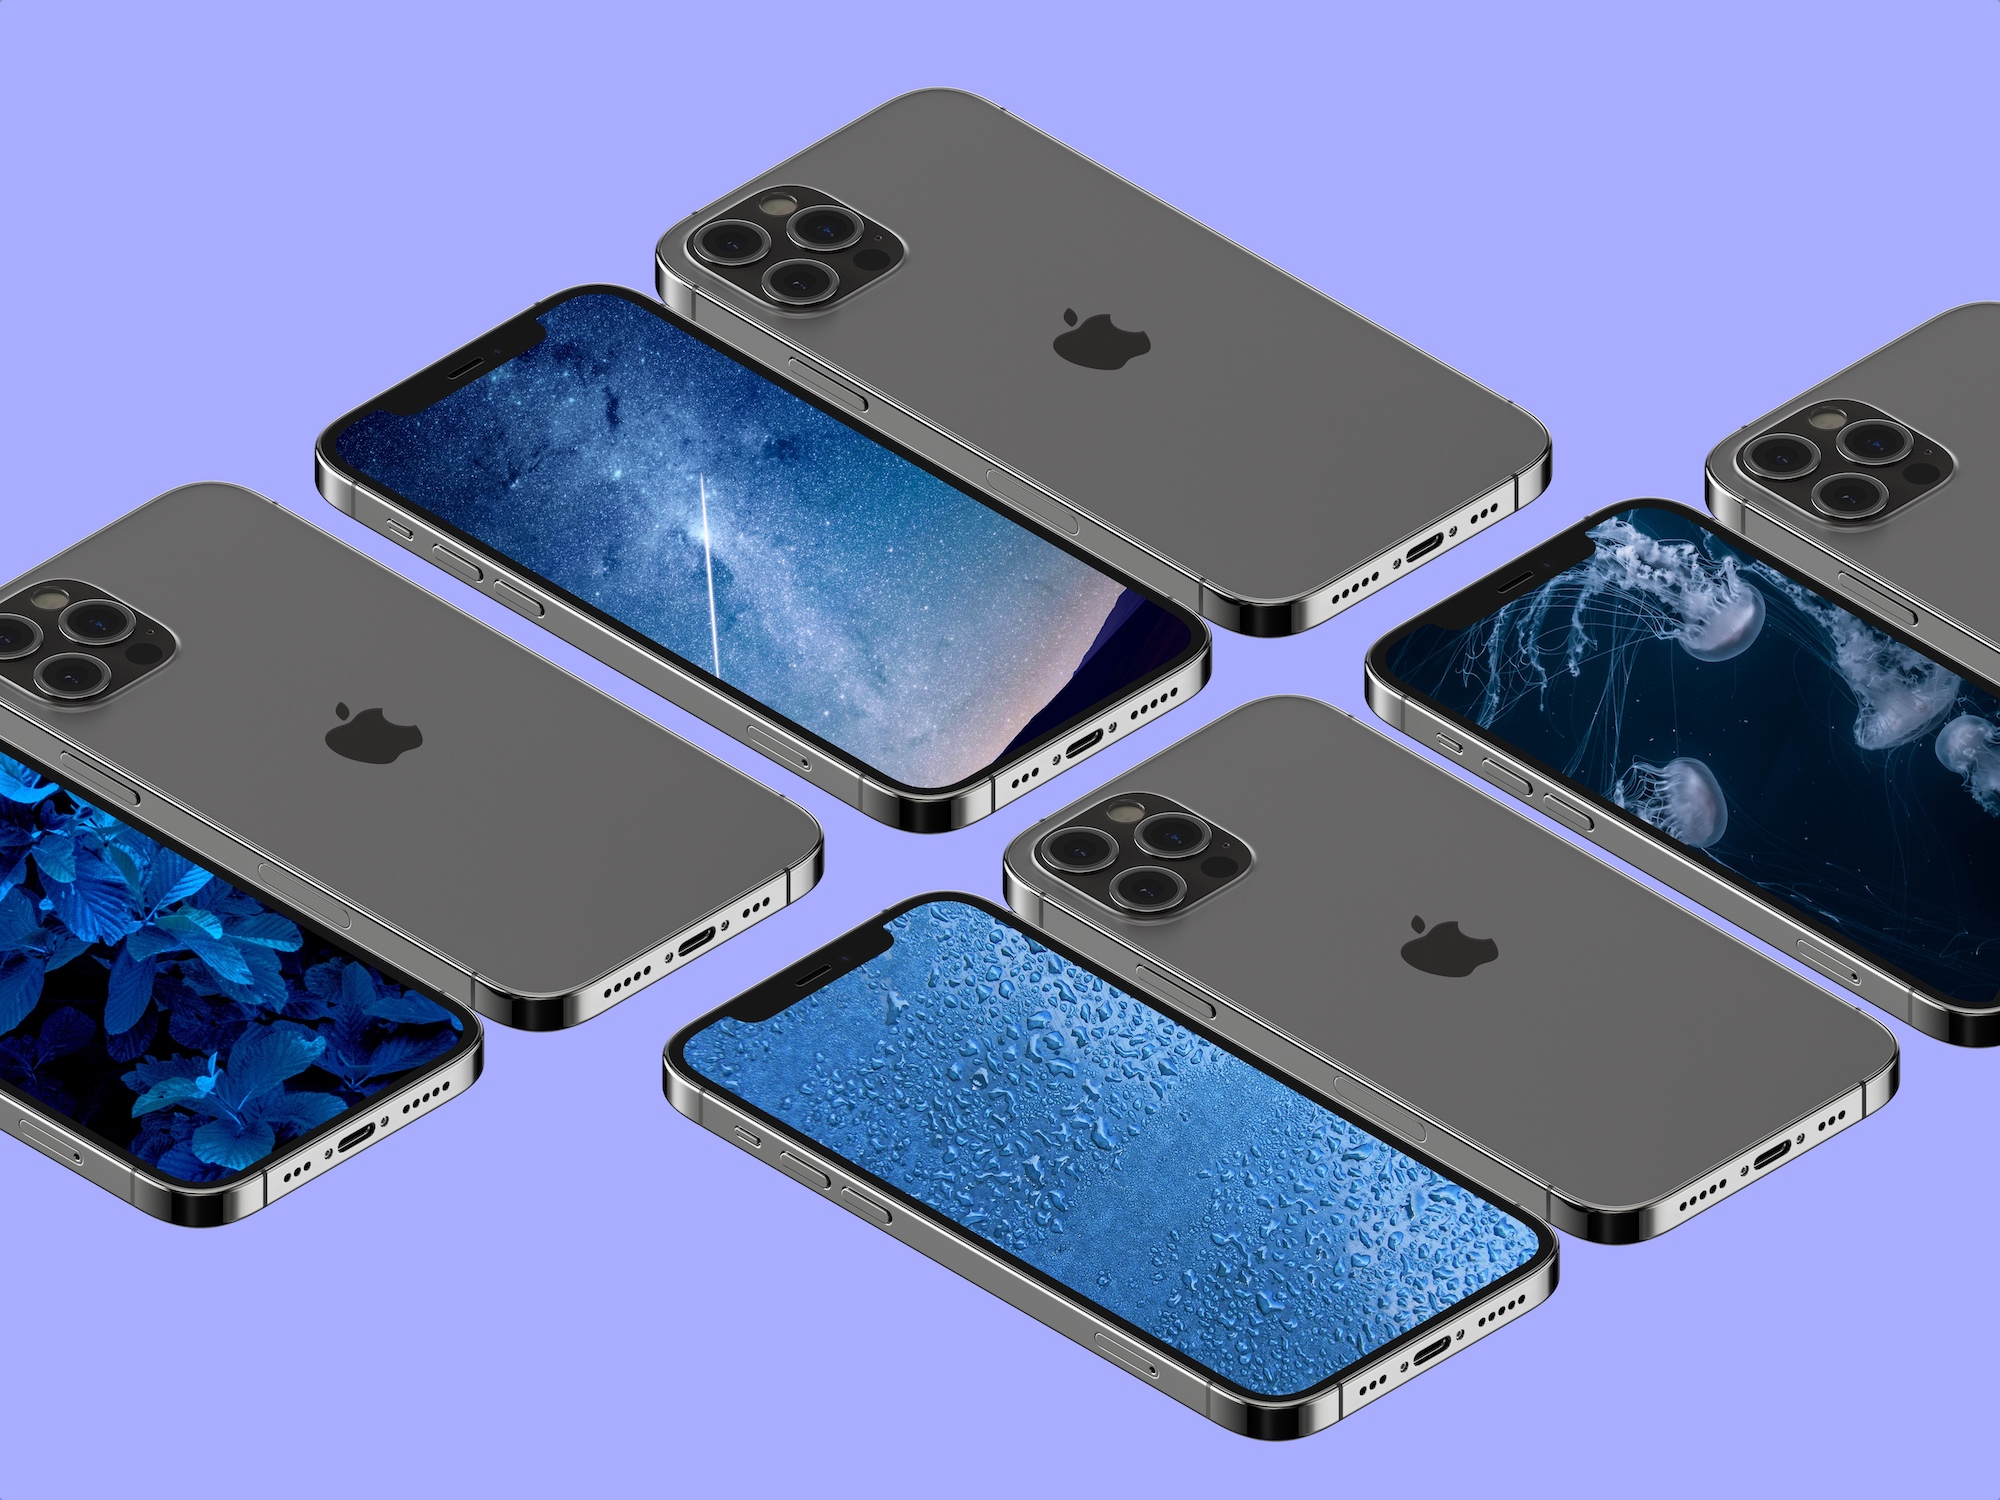 Download these blue wallpapers for iPhone iPad and Mac 2000x1500